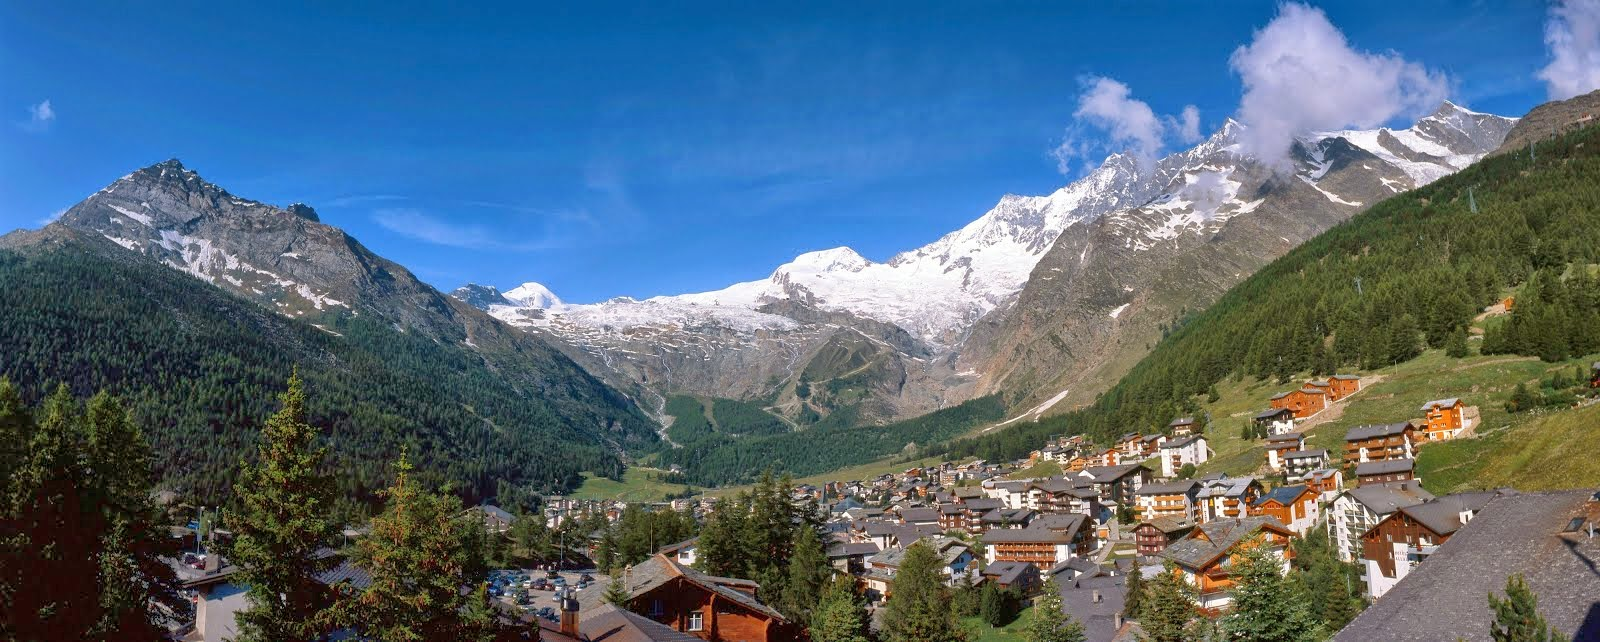 Hotel Saas-Fee Switzerland